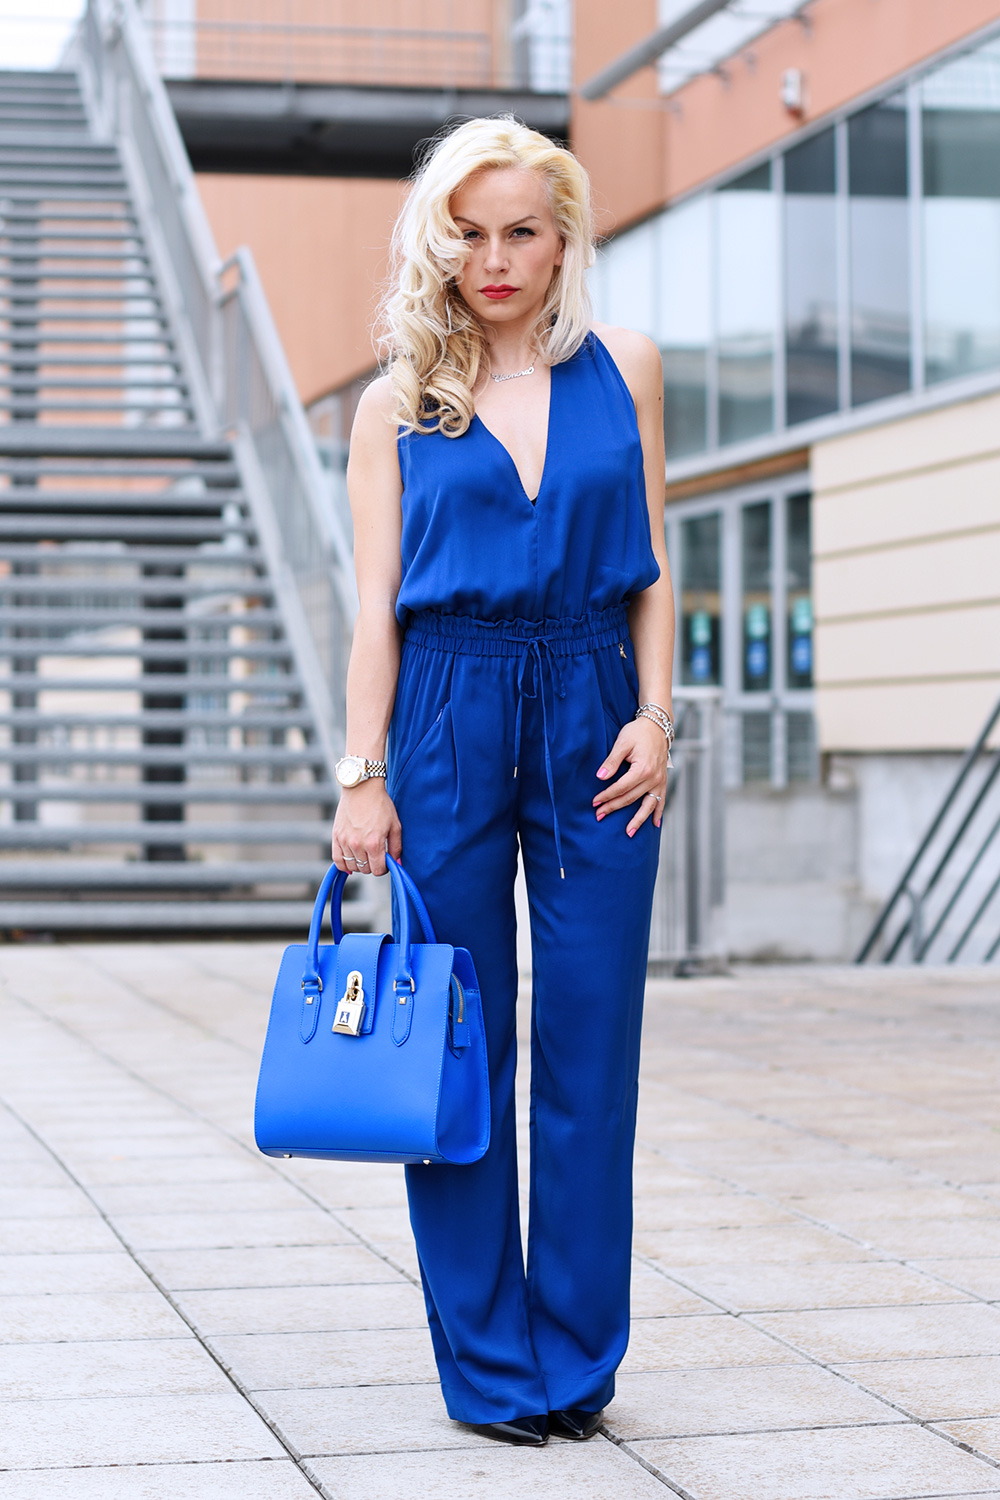 Negozi Pellizzari, outfit per la primavera/estate 2015, Negozi Pellizzari outlet abbigliamento, tendenze P/E 2015, spring/summer 2015 trends – fashion blogger It-Girl by Eleonora Petrella